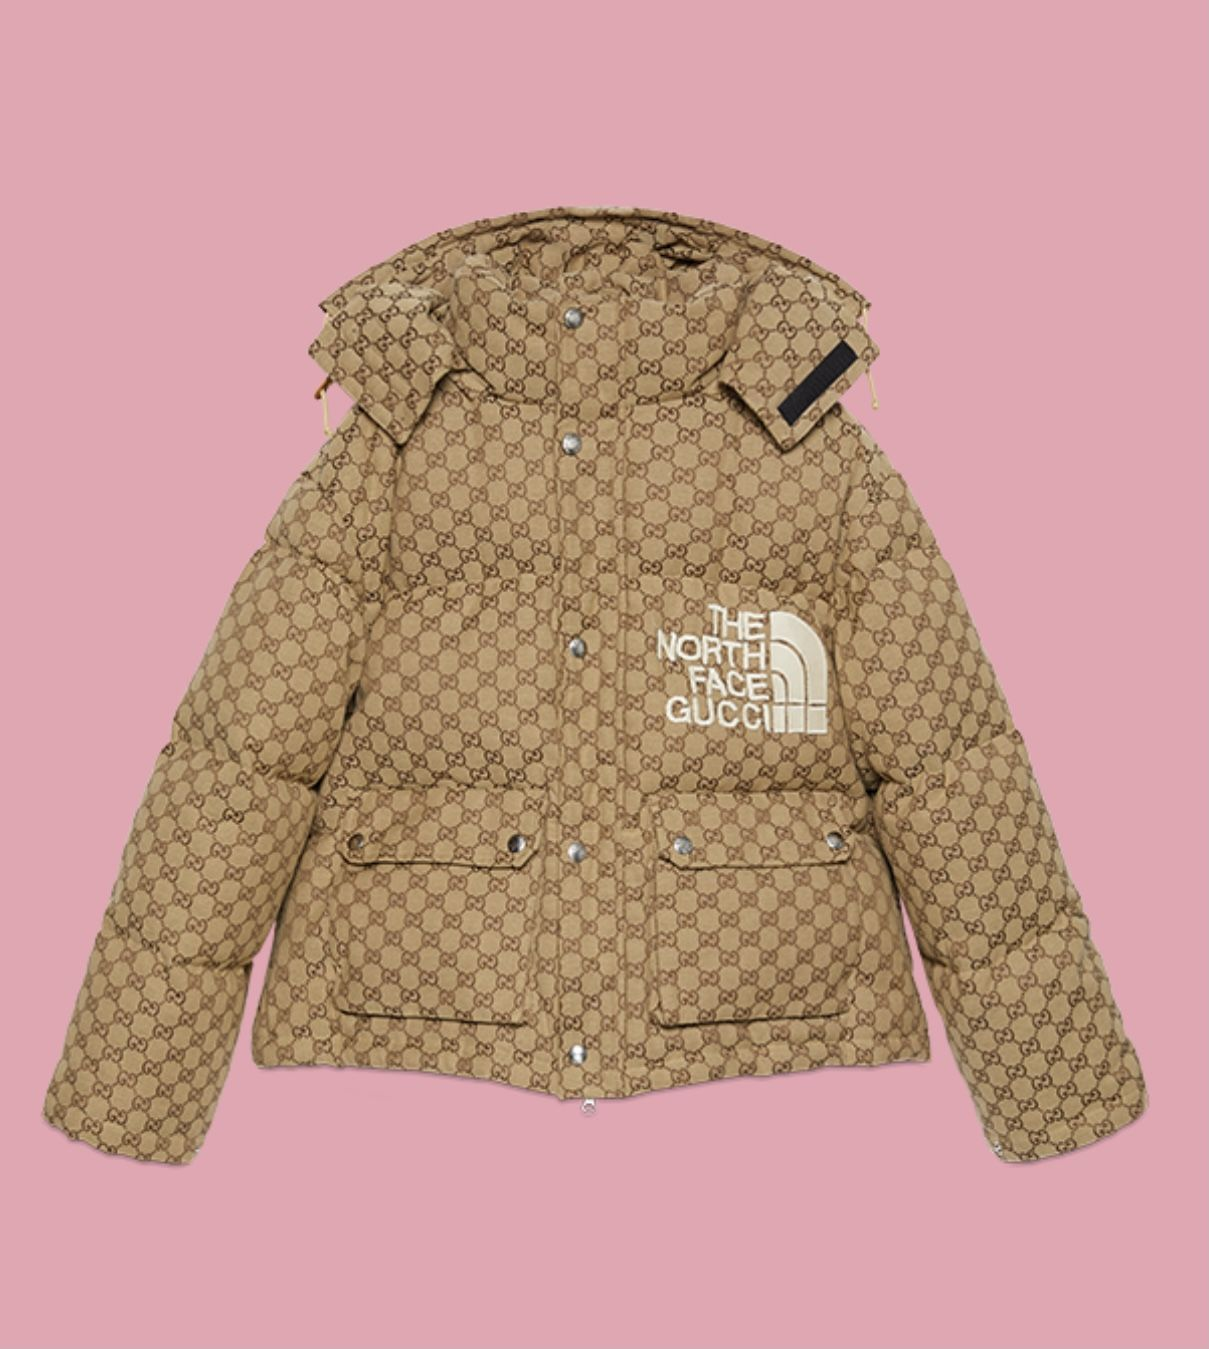 Gucci North Face Puffer In 2021 North Face Puffer Jacket North Face Puffer The North Face [ 1349 x 1209 Pixel ]